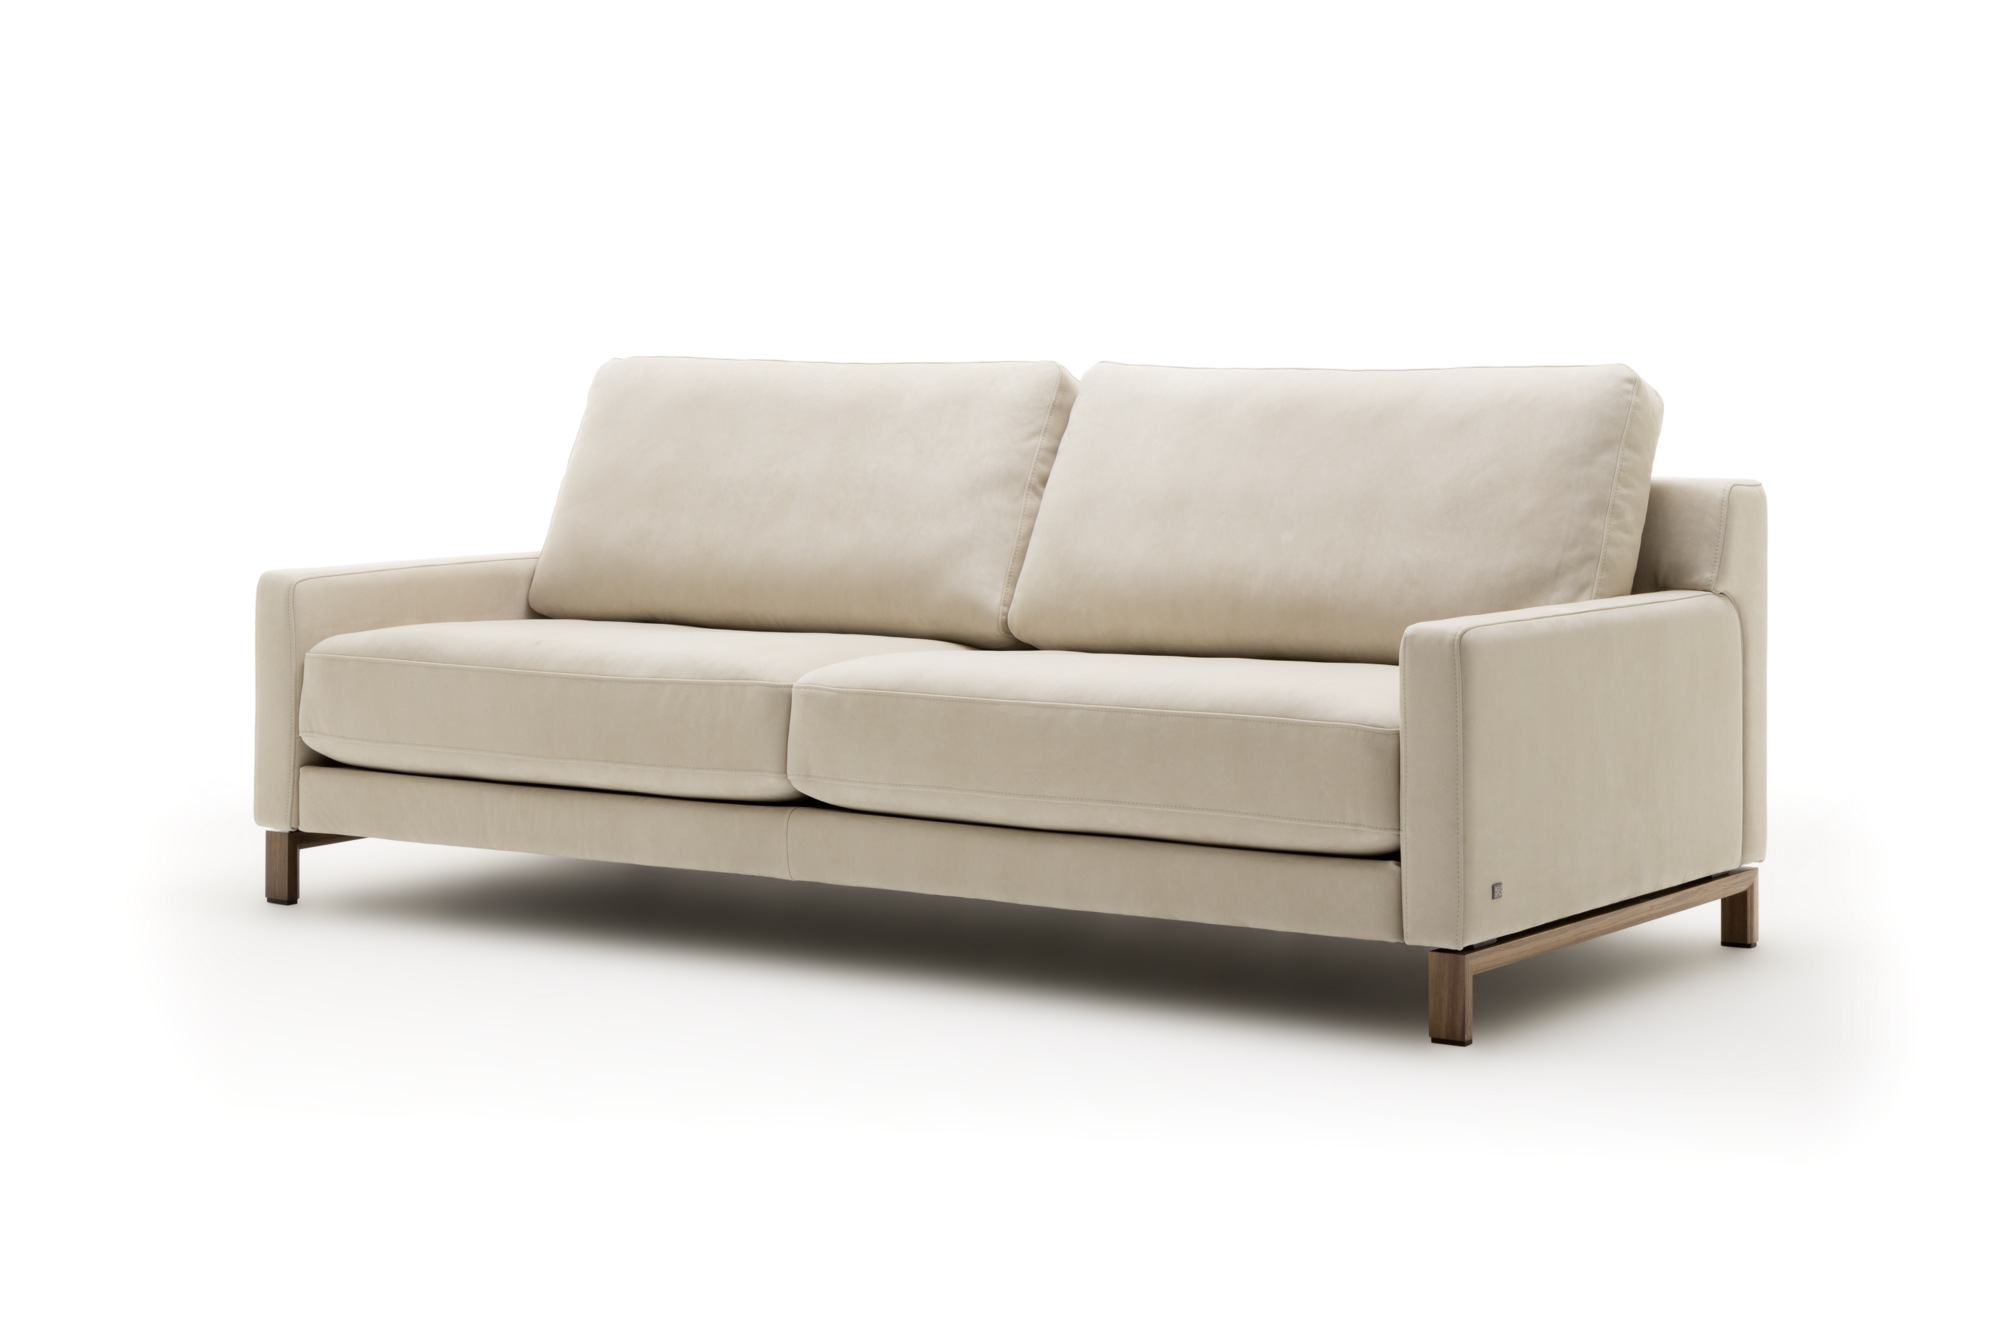 Rolf Benz Modular Sofa 222 Ego Leather Sofa Ego Collection By Rolf Benz Design